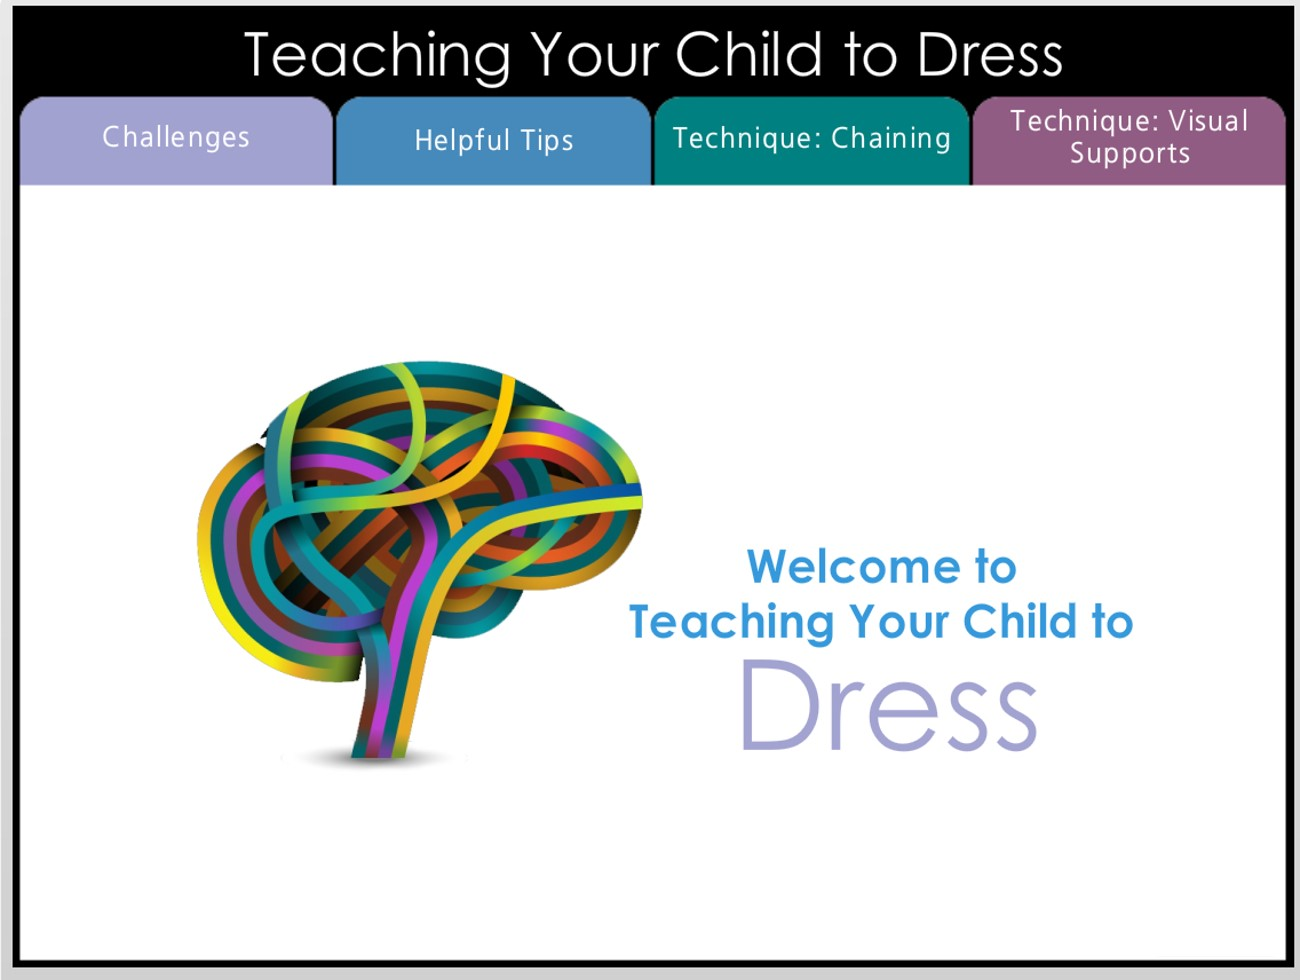 Teaching Your Child to Dress